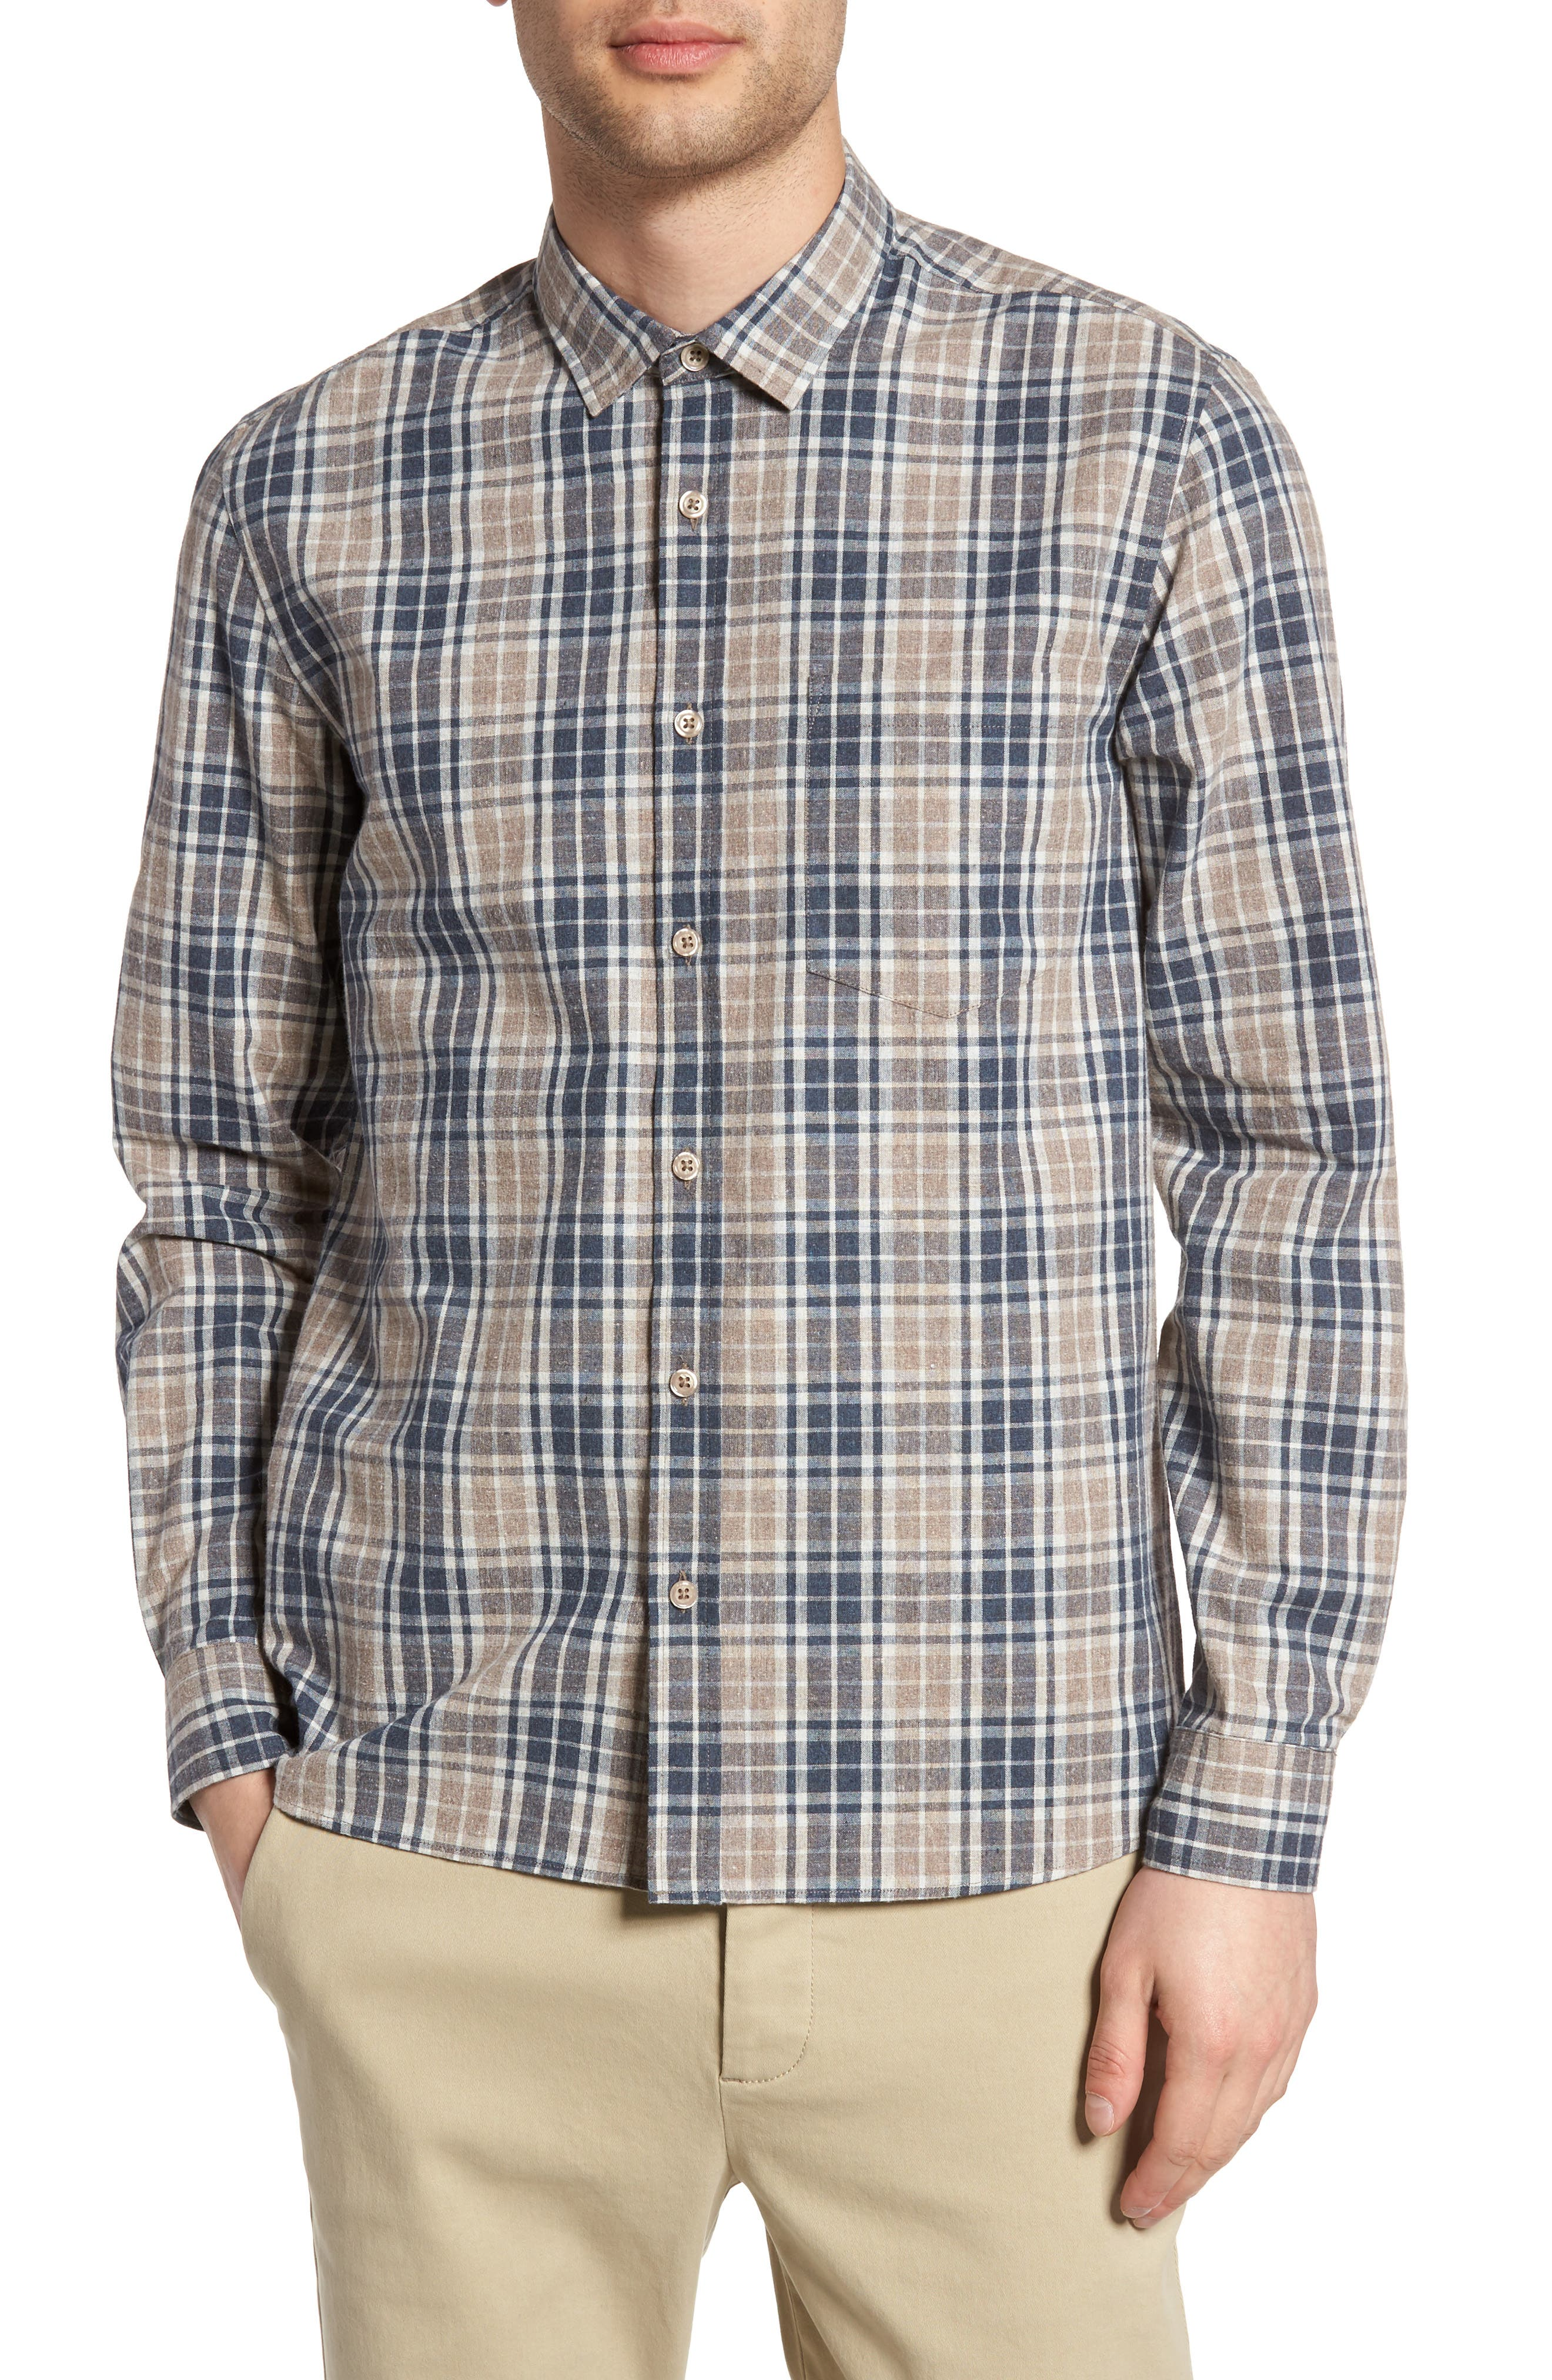 Topman Check Shirt